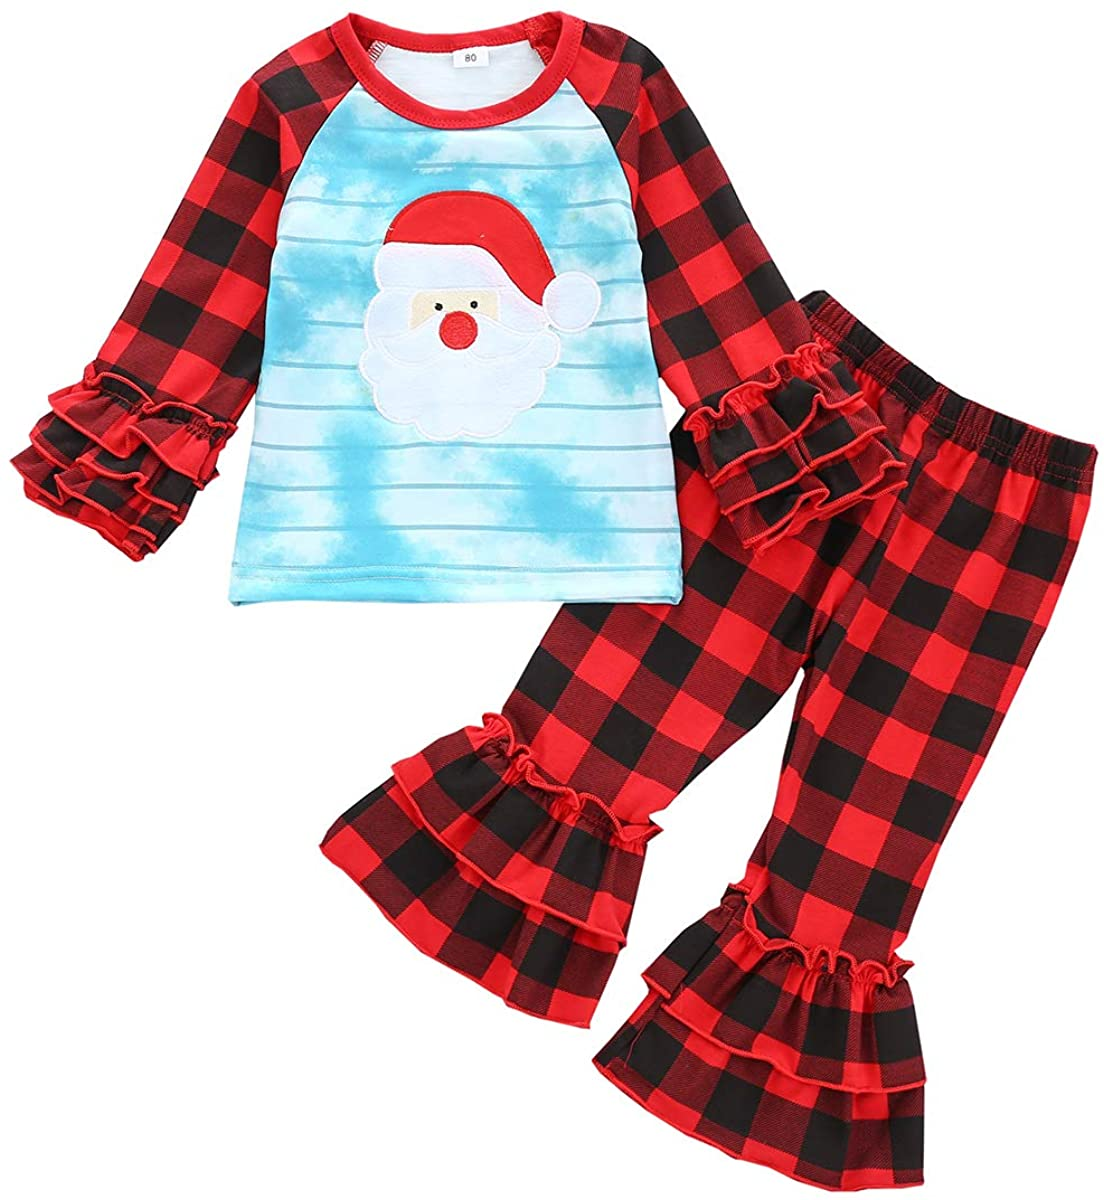 Toddler Baby Girl Christmas Outfits Long Sleeve Santa Claus Top Plaid Bell Bottoms Pants Xmas Clothes Set 6M-5Y